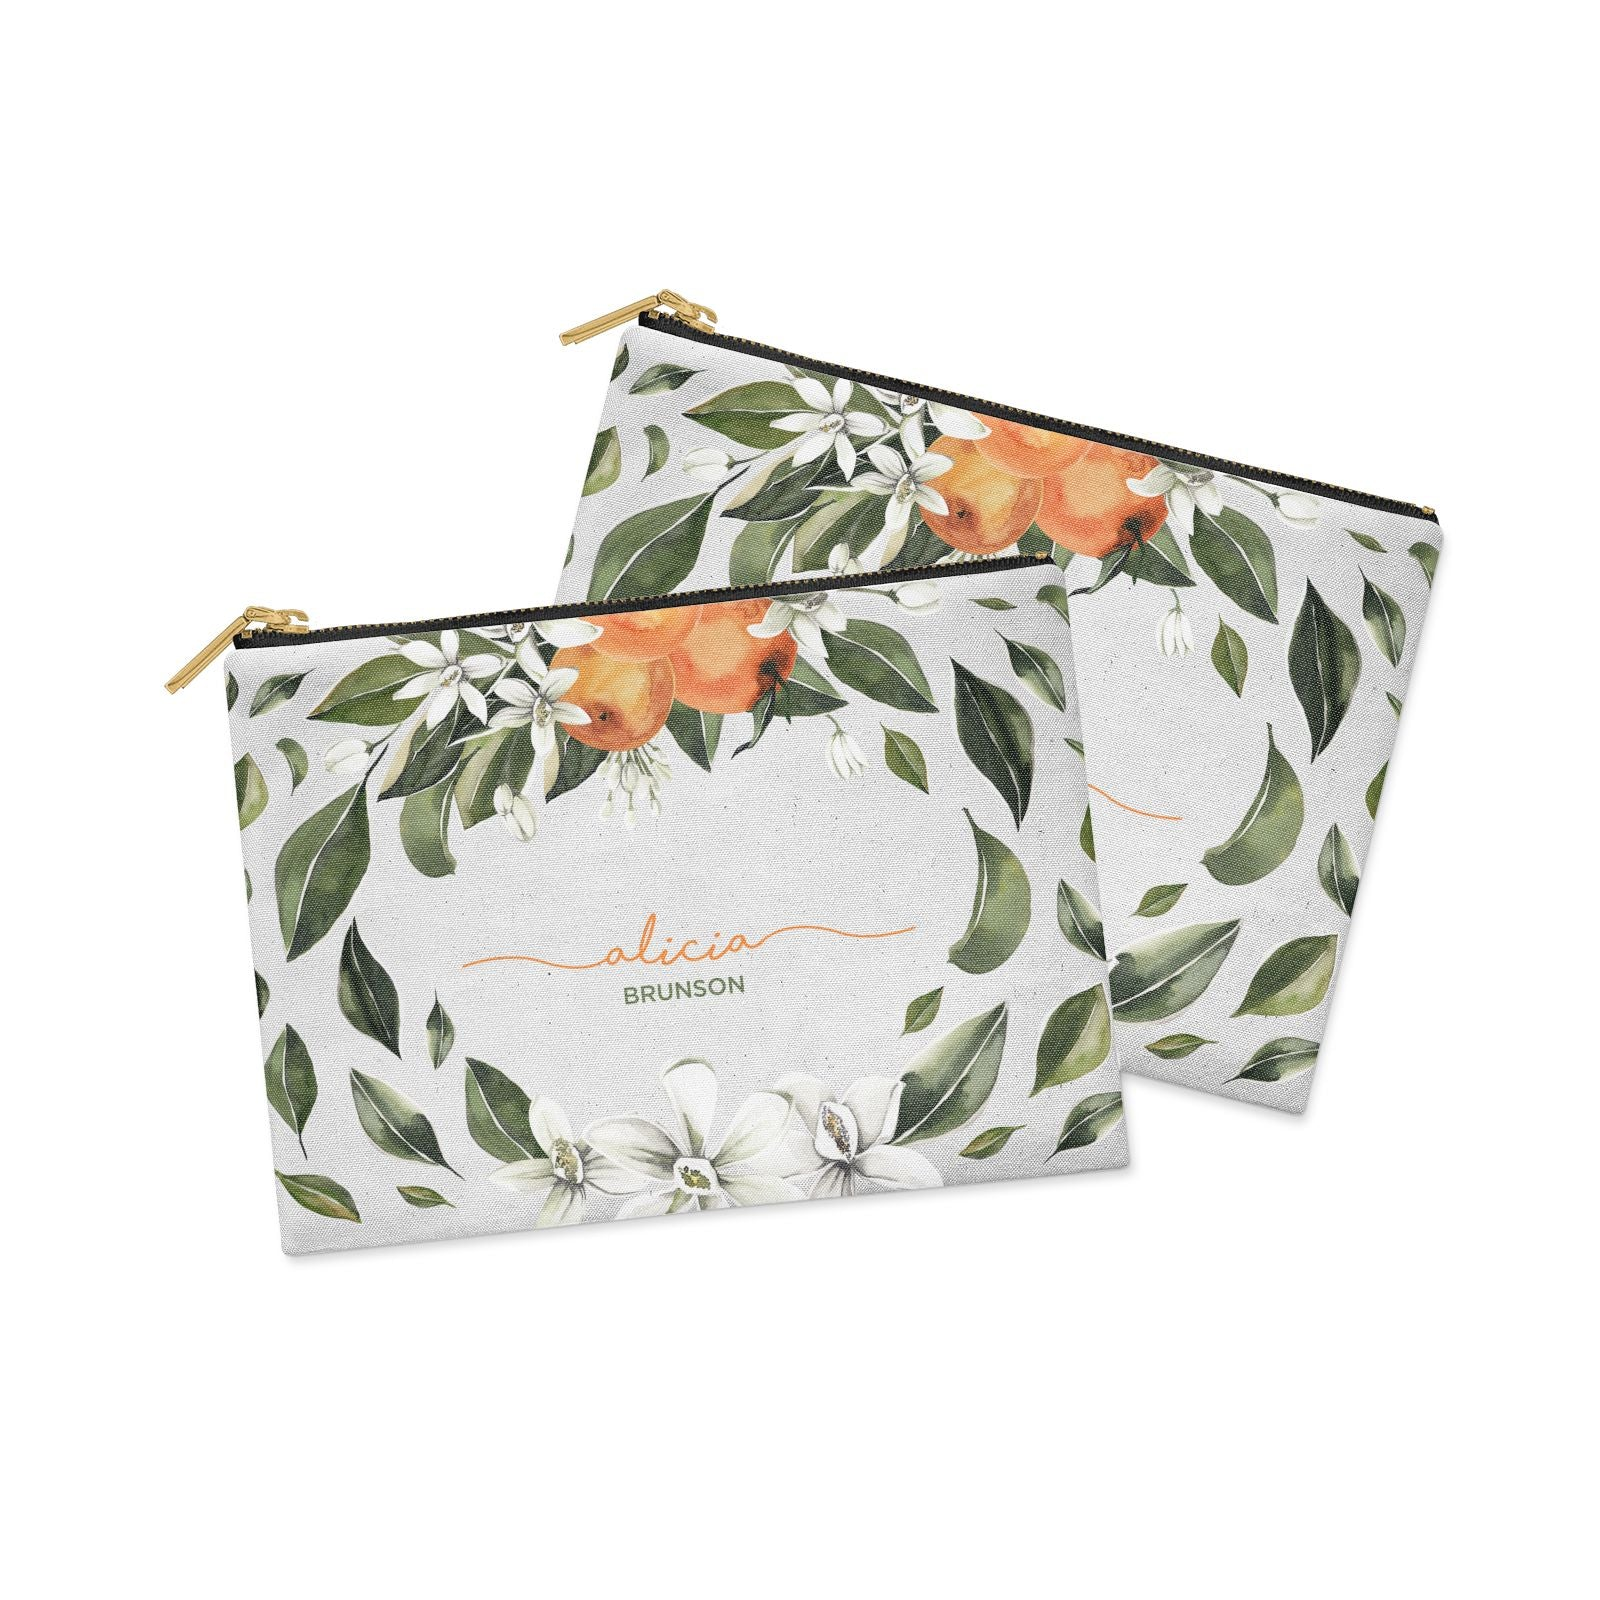 Personalised Orange Tree Wreath Clutch Bag Zipper Pouch Alternative View